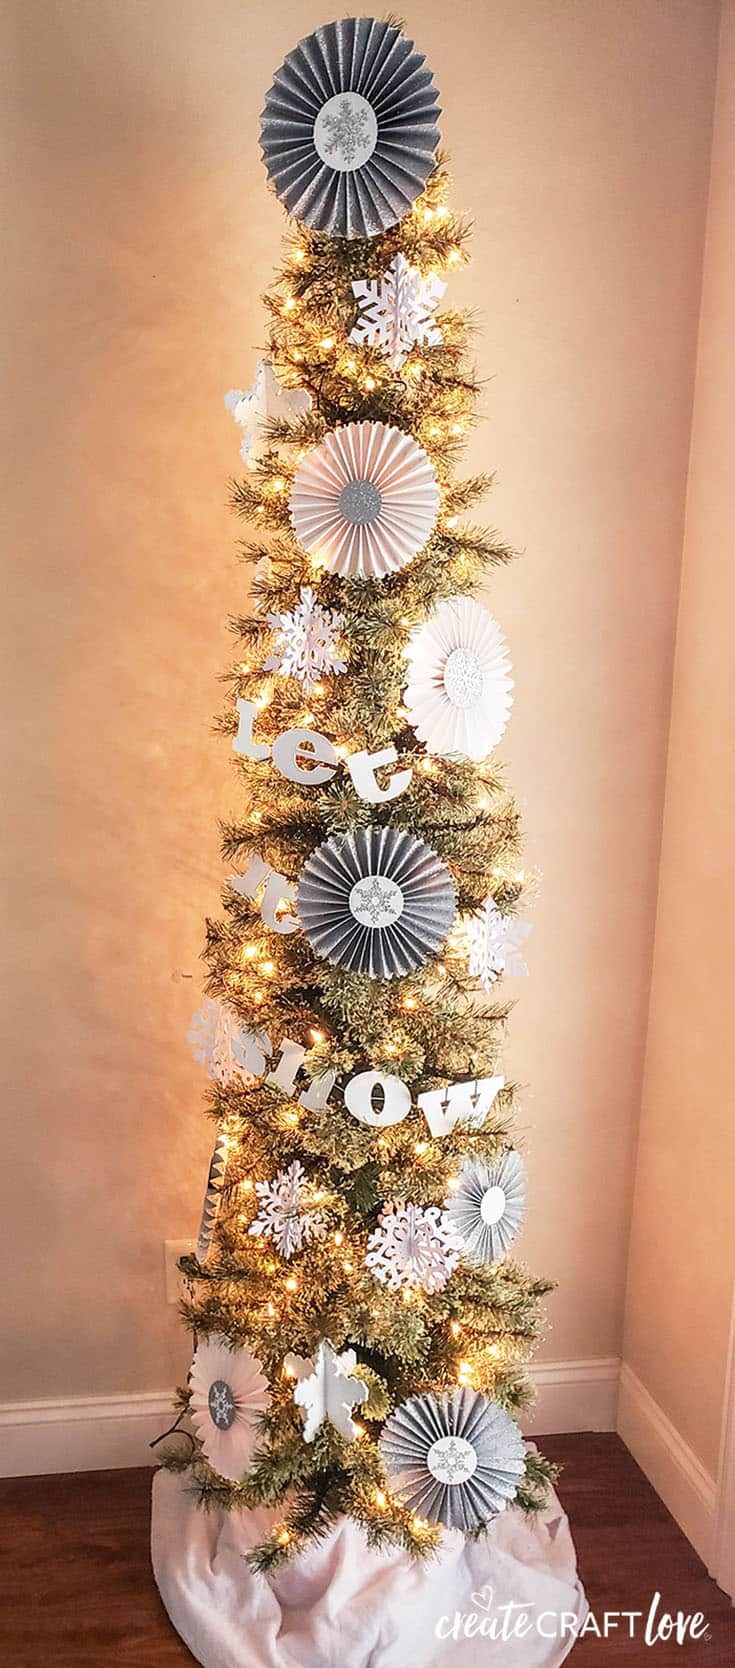 Let It Snow Christmas Tree with Cricut